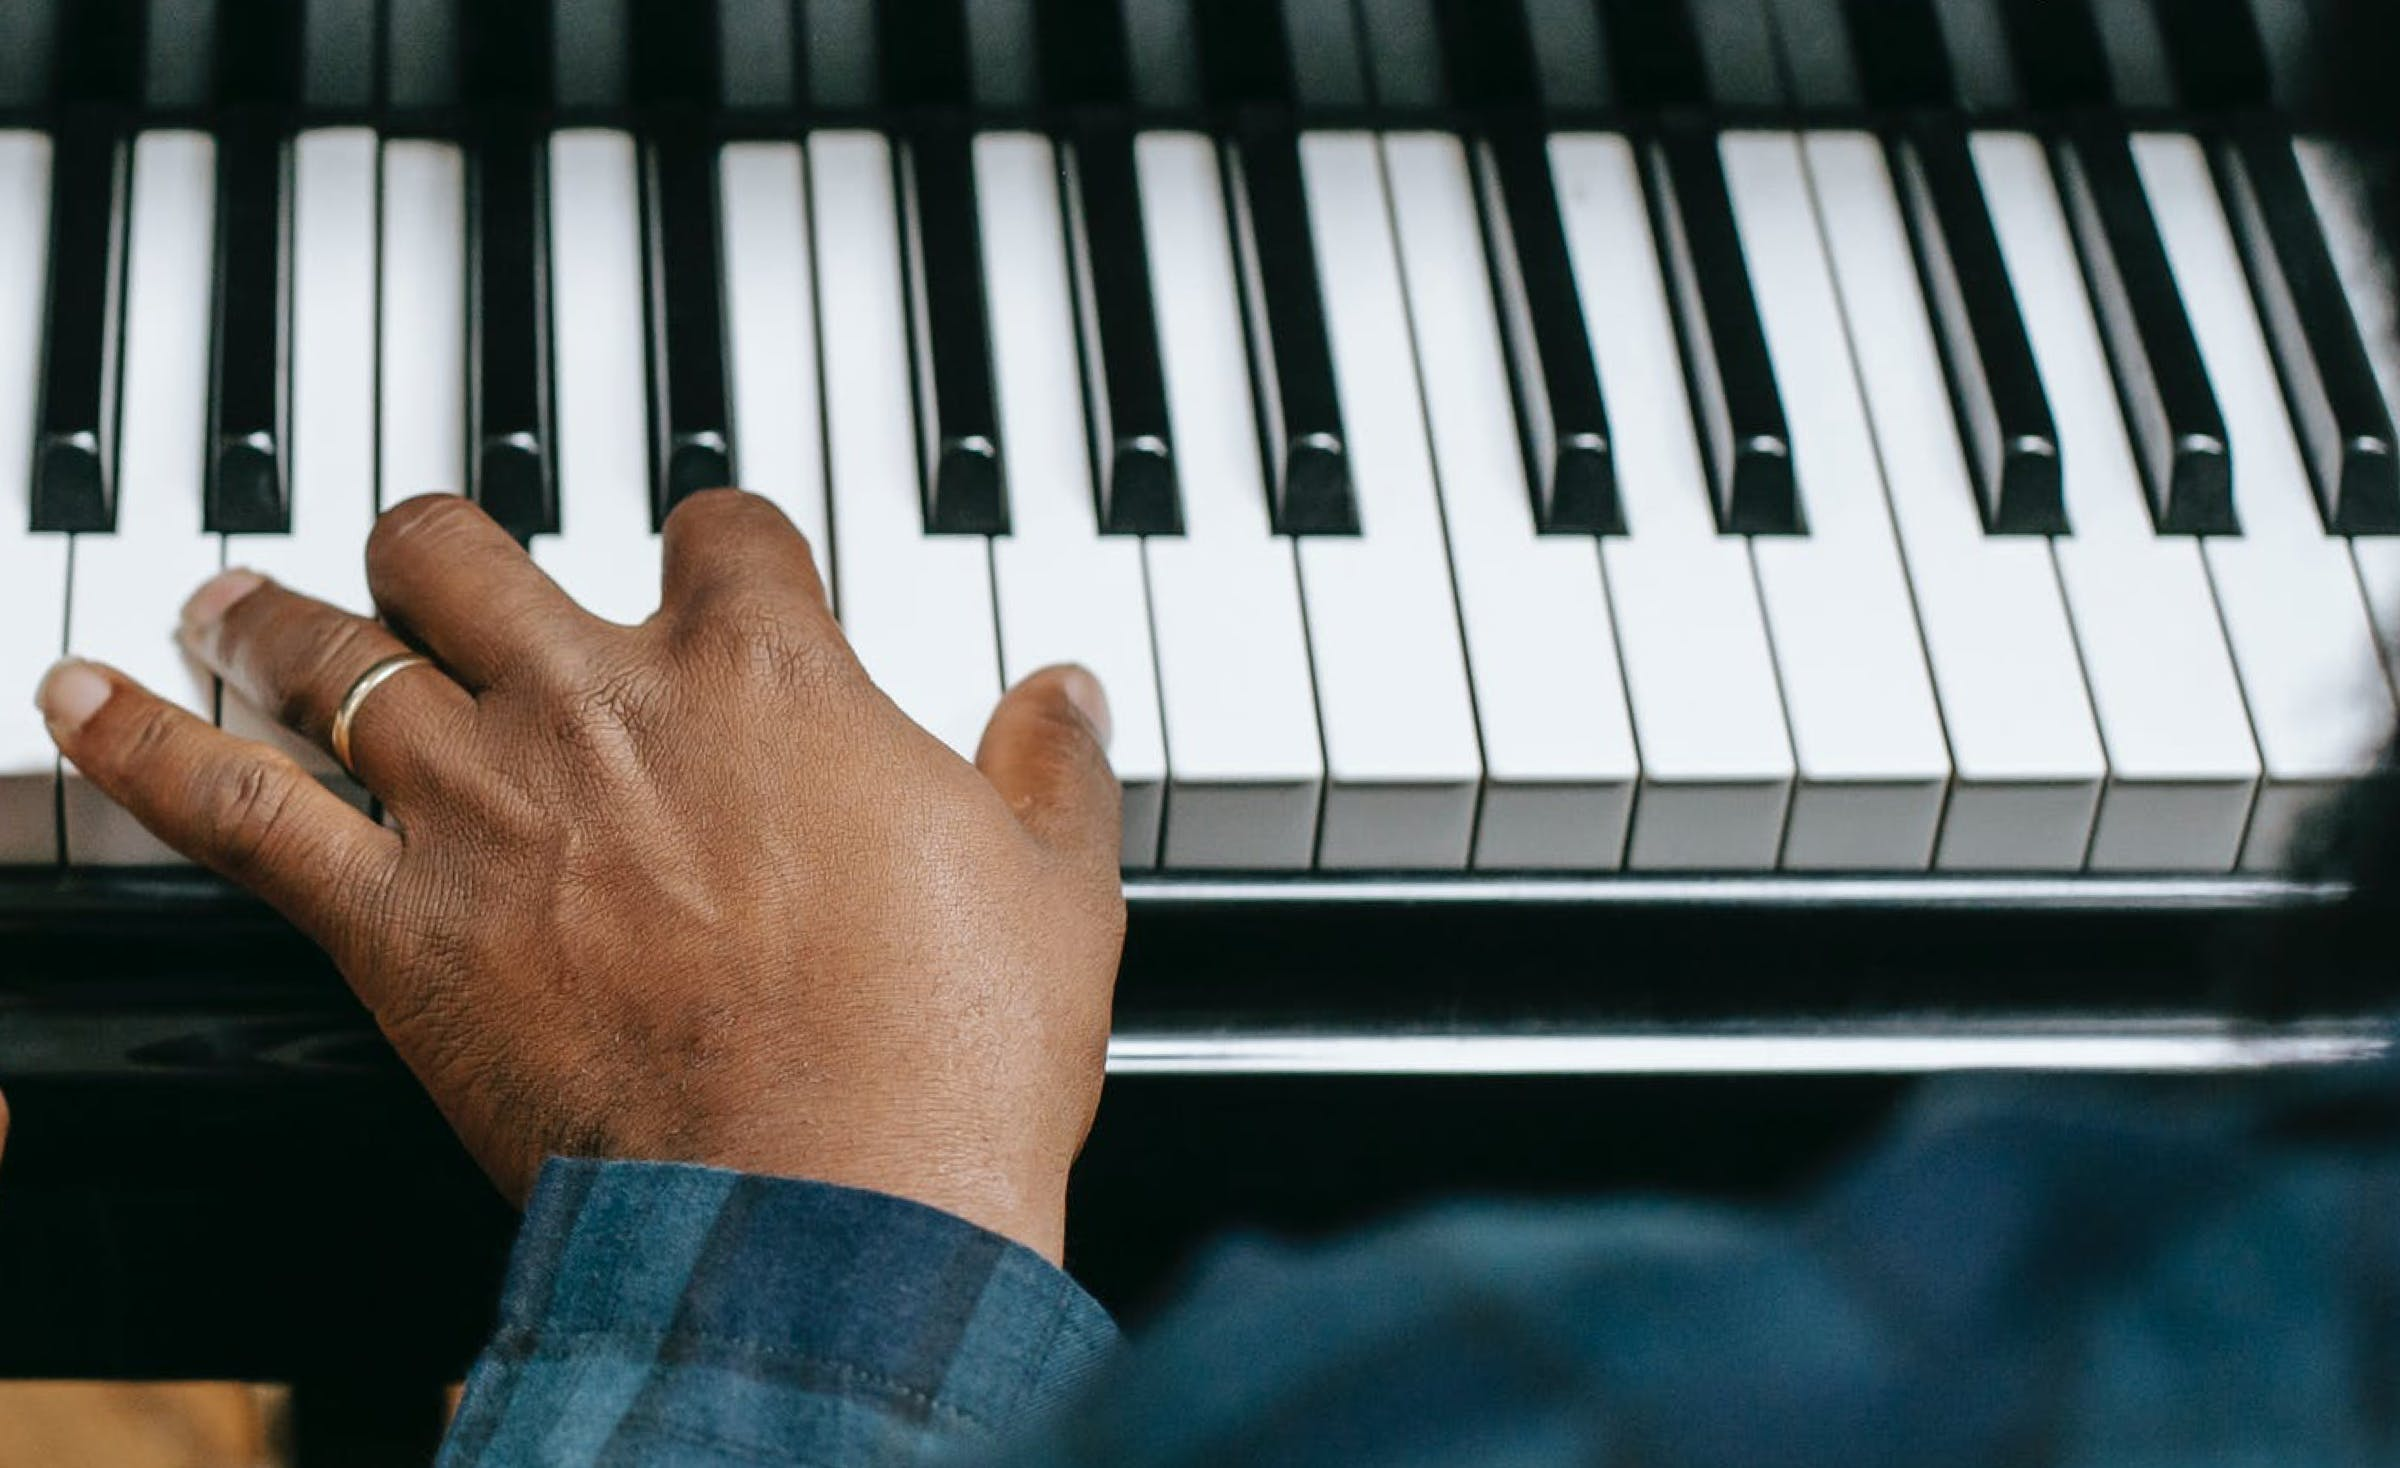 Left hand on a piano